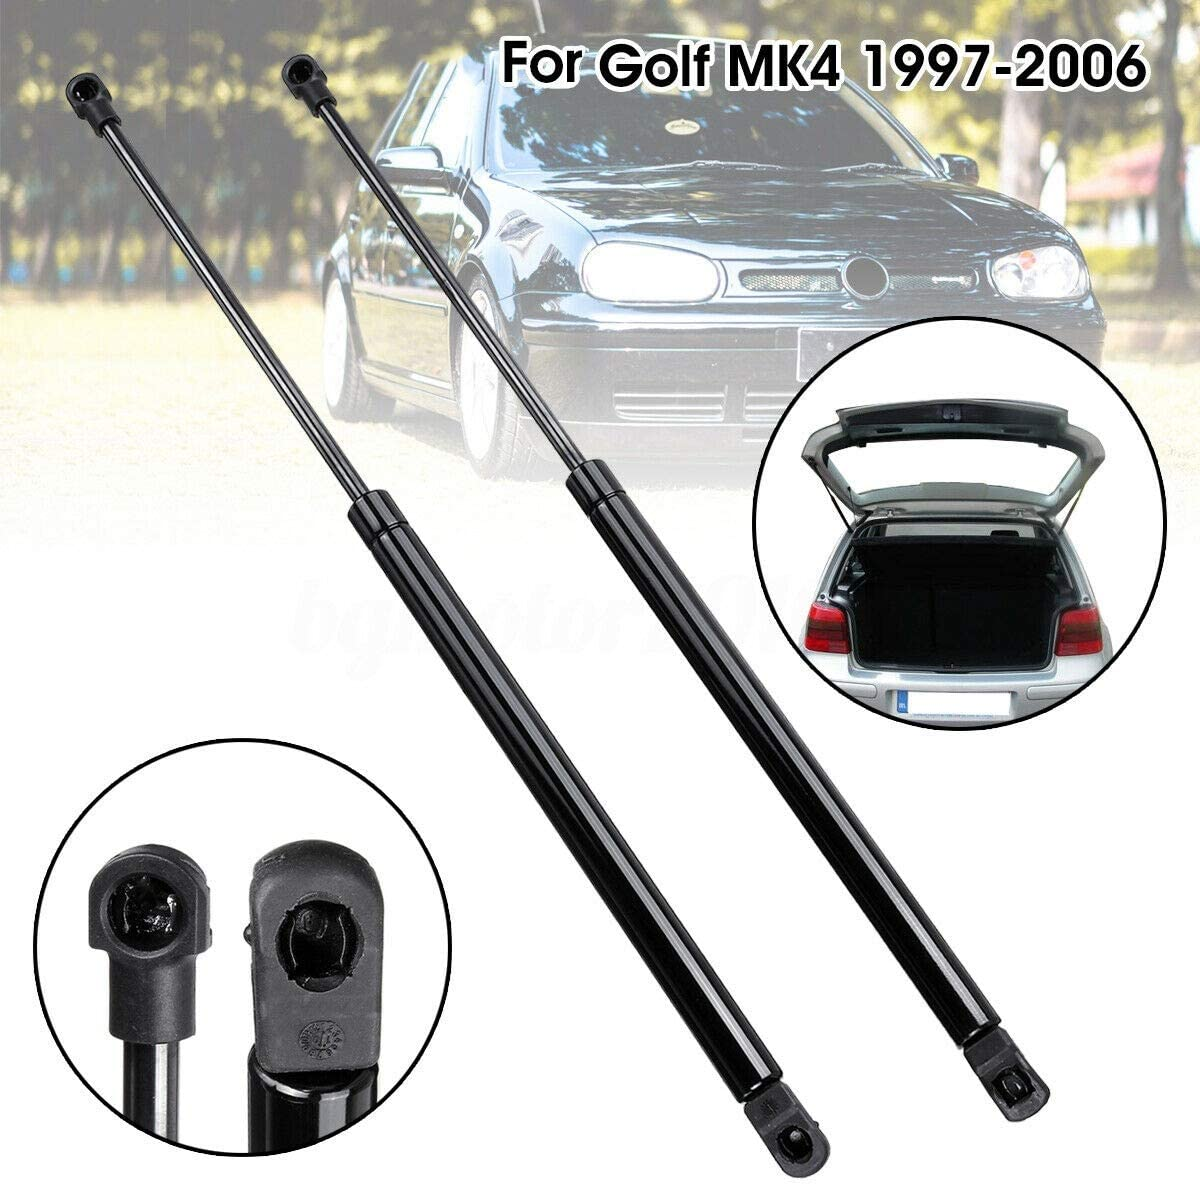 MK4 1997-2006 Semoic 2X Rear Boot Tailgate Lid Gas Spring Lift Struts Support For